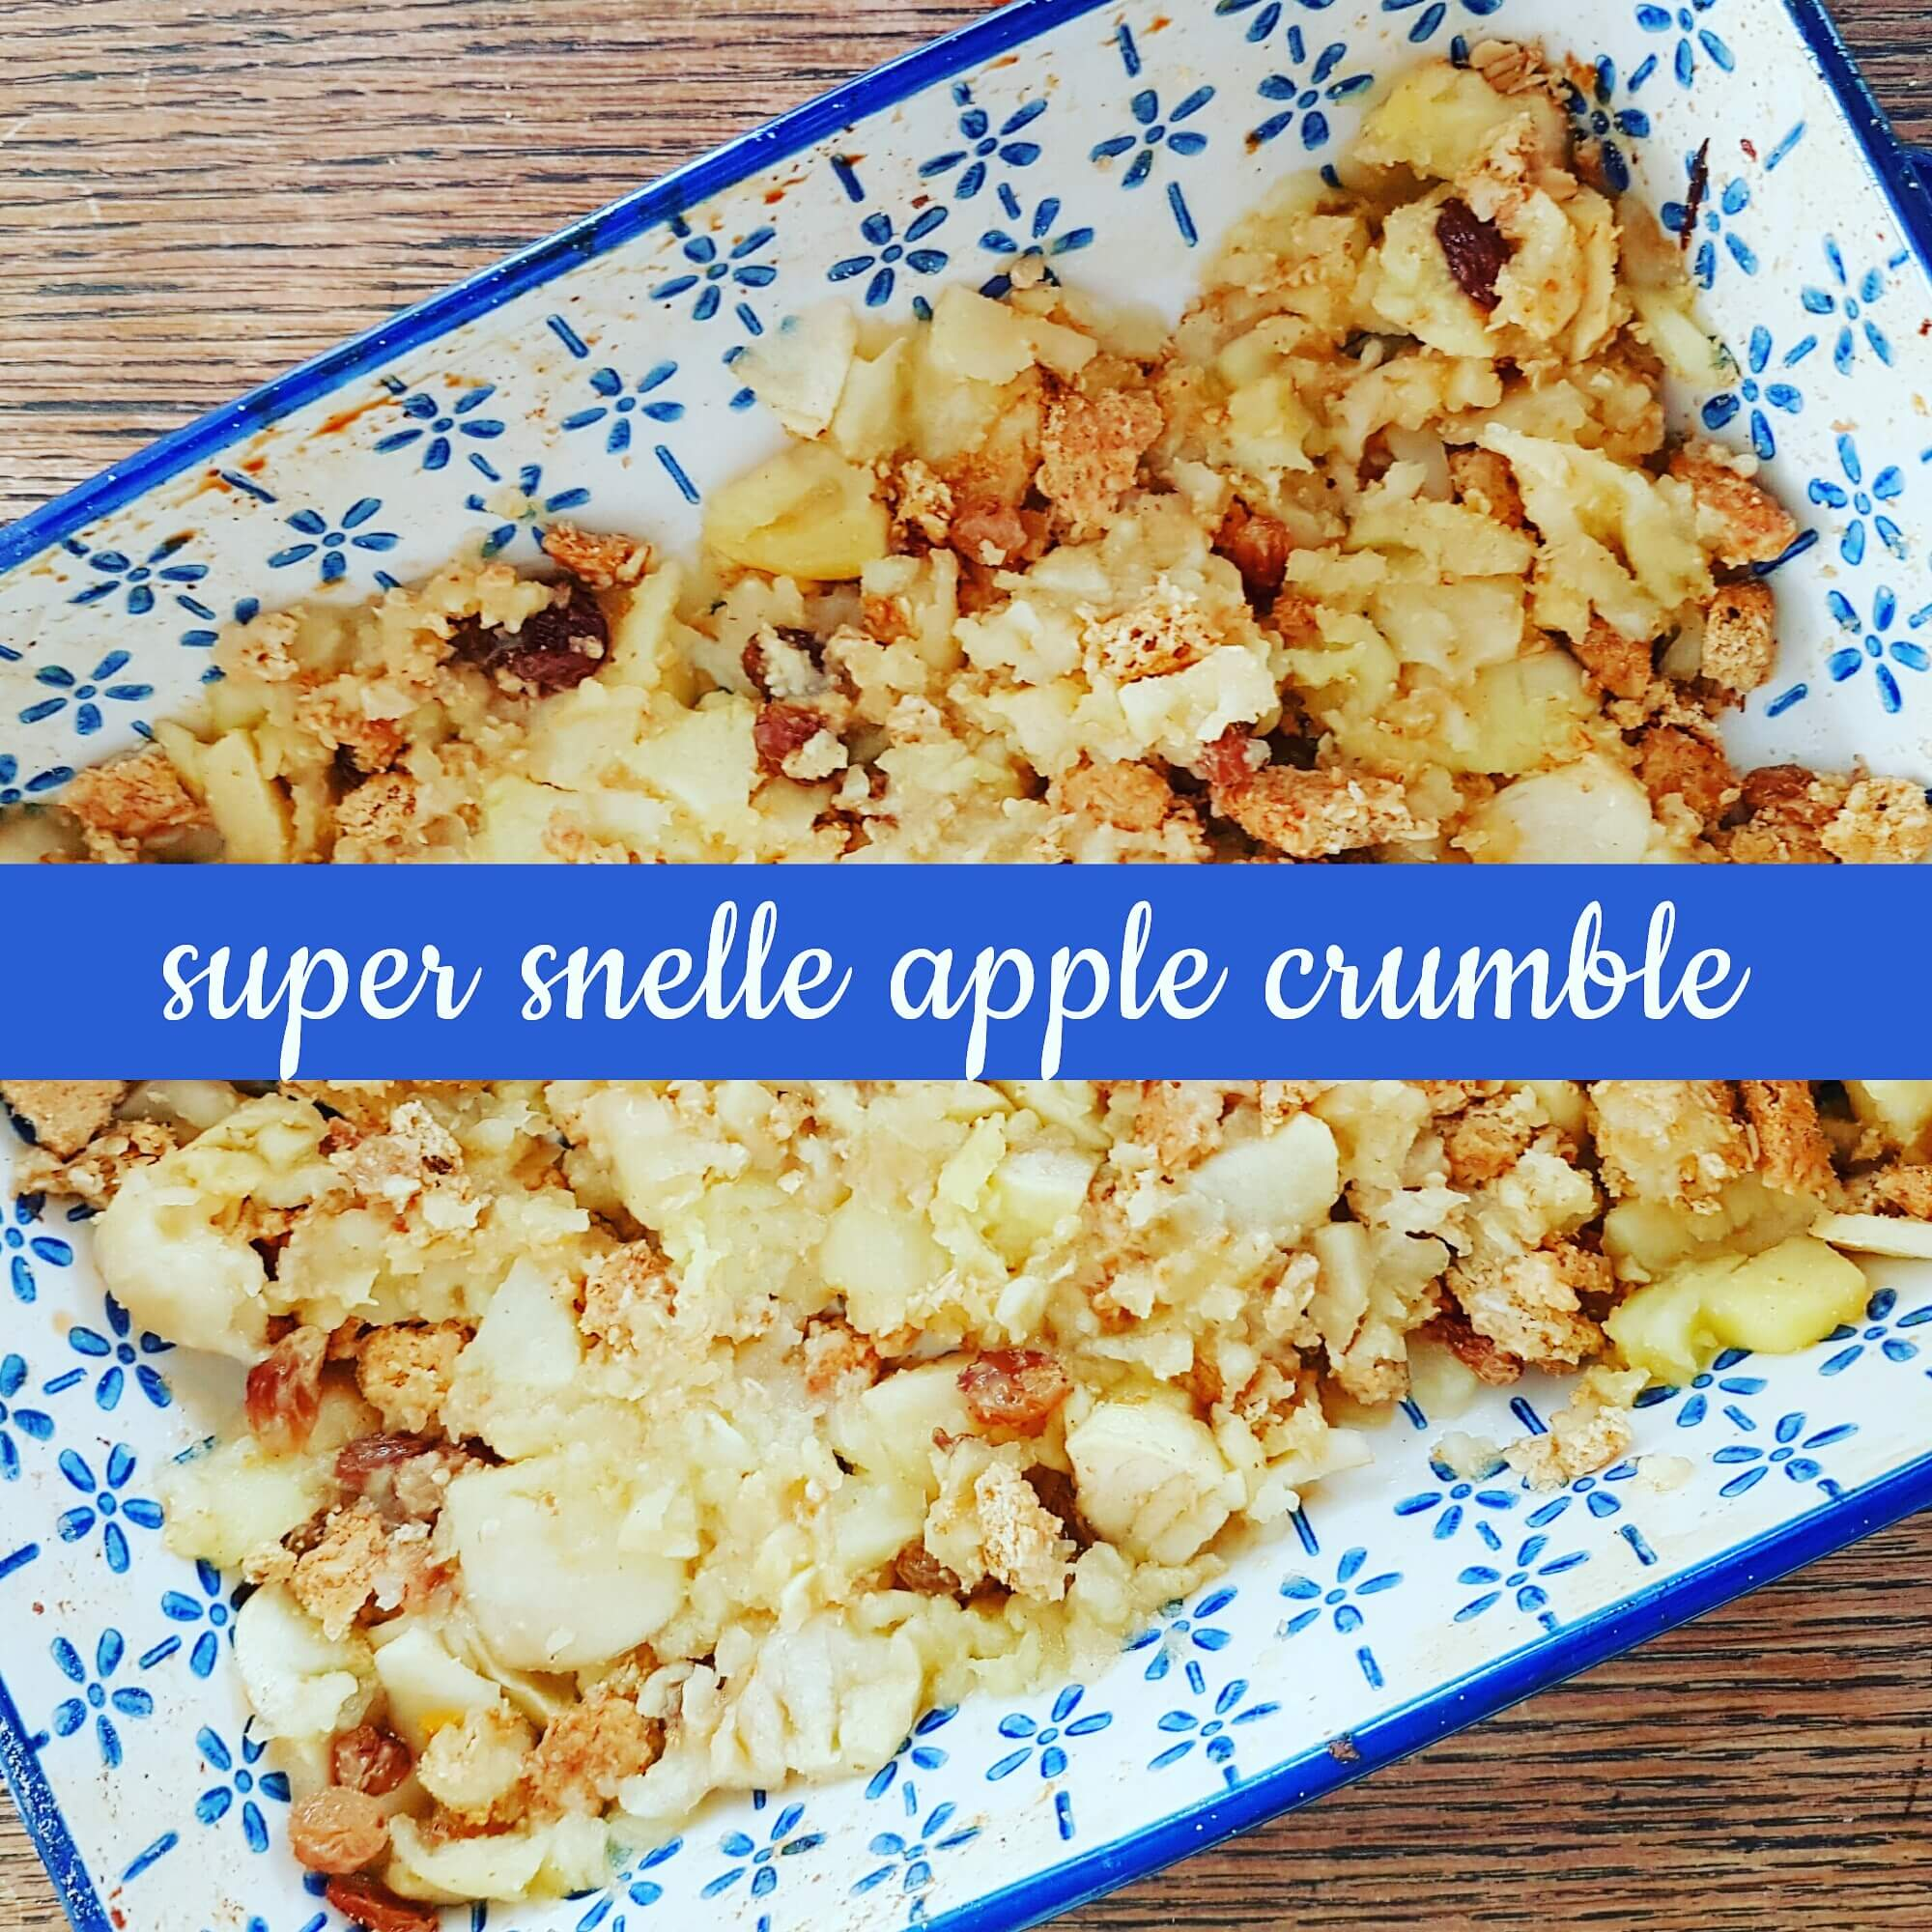 Recept voor super snelle apple crumble